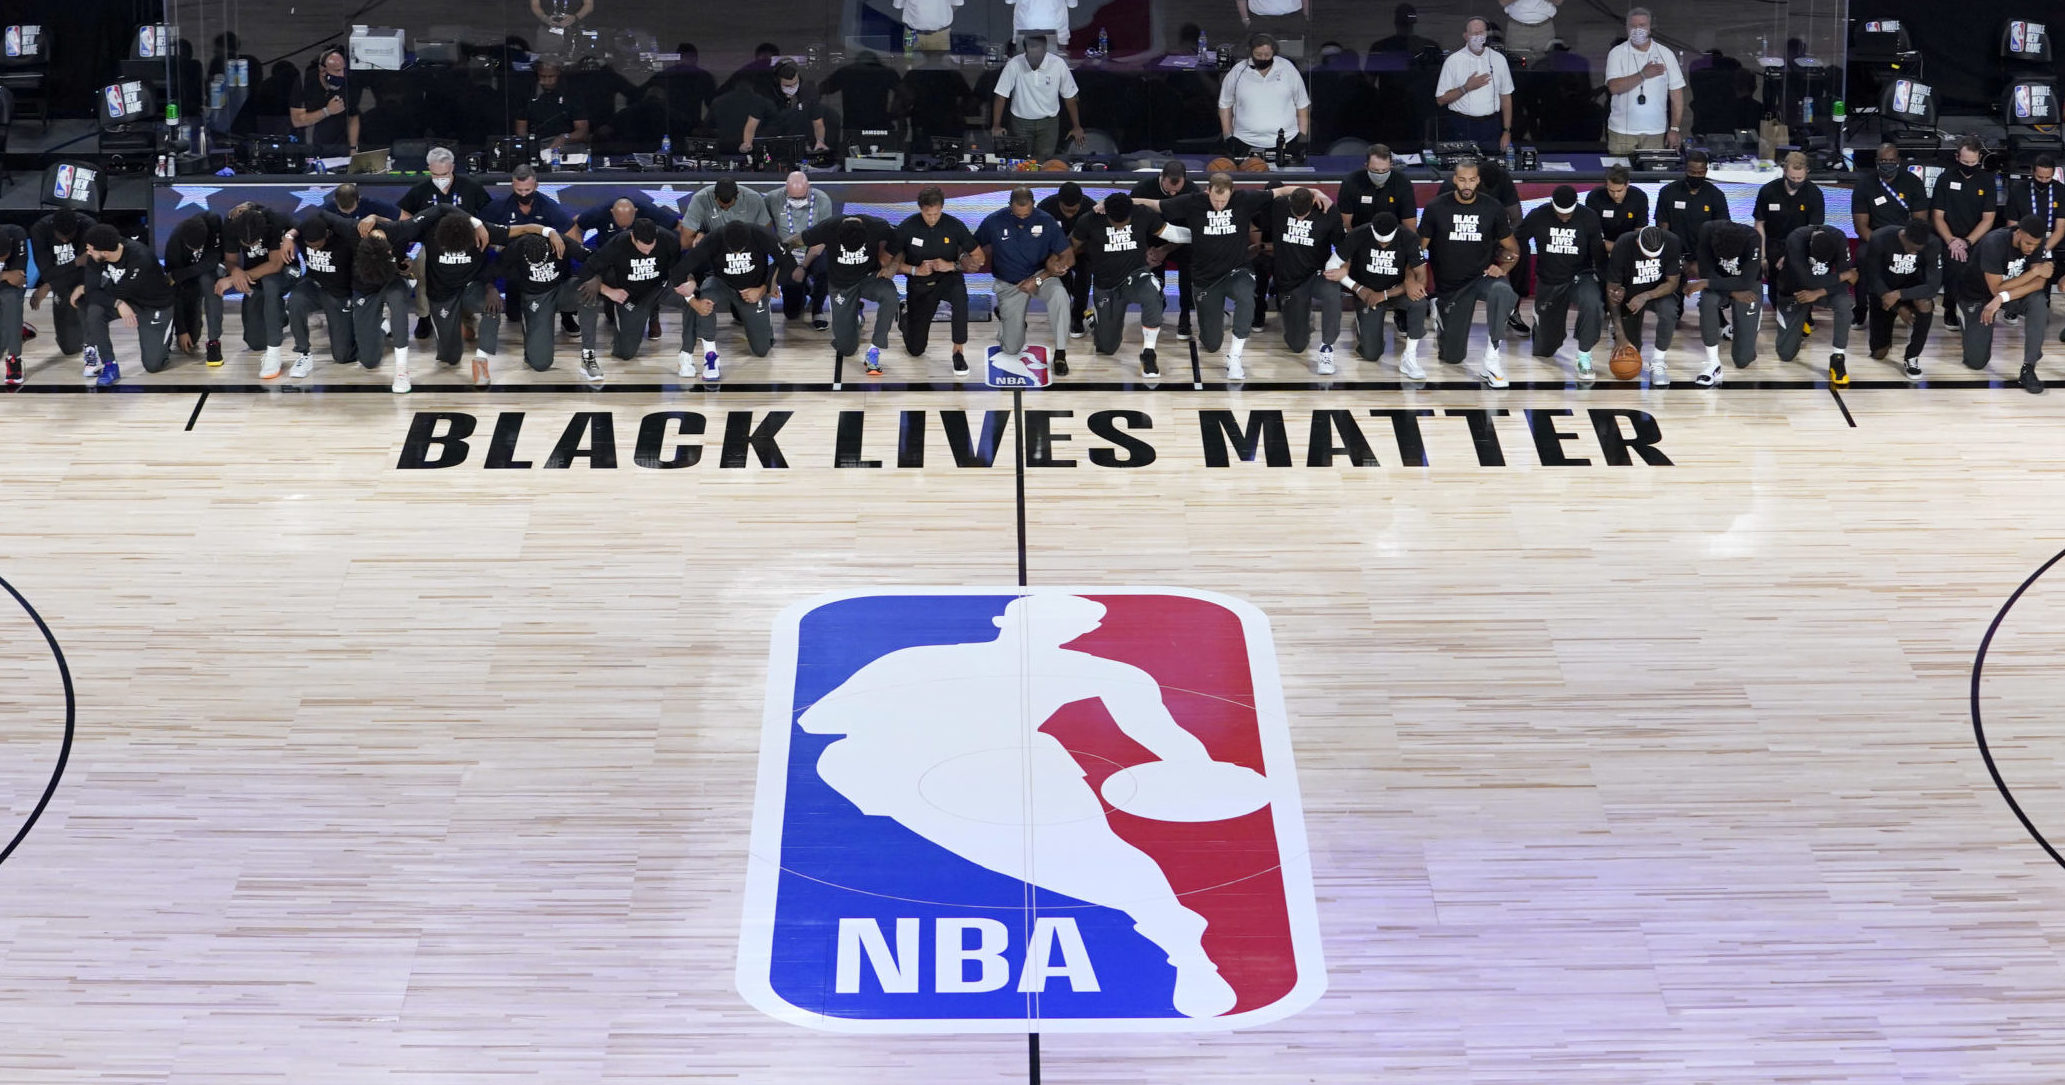 """Members of the New Orleans Pelicans and Utah Jazz kneel together in front of a """"Black Lives Matter"""" logo on the court during the national anthem before the start of a game July 30, 2020, in Lake Buena Vista, Florida."""